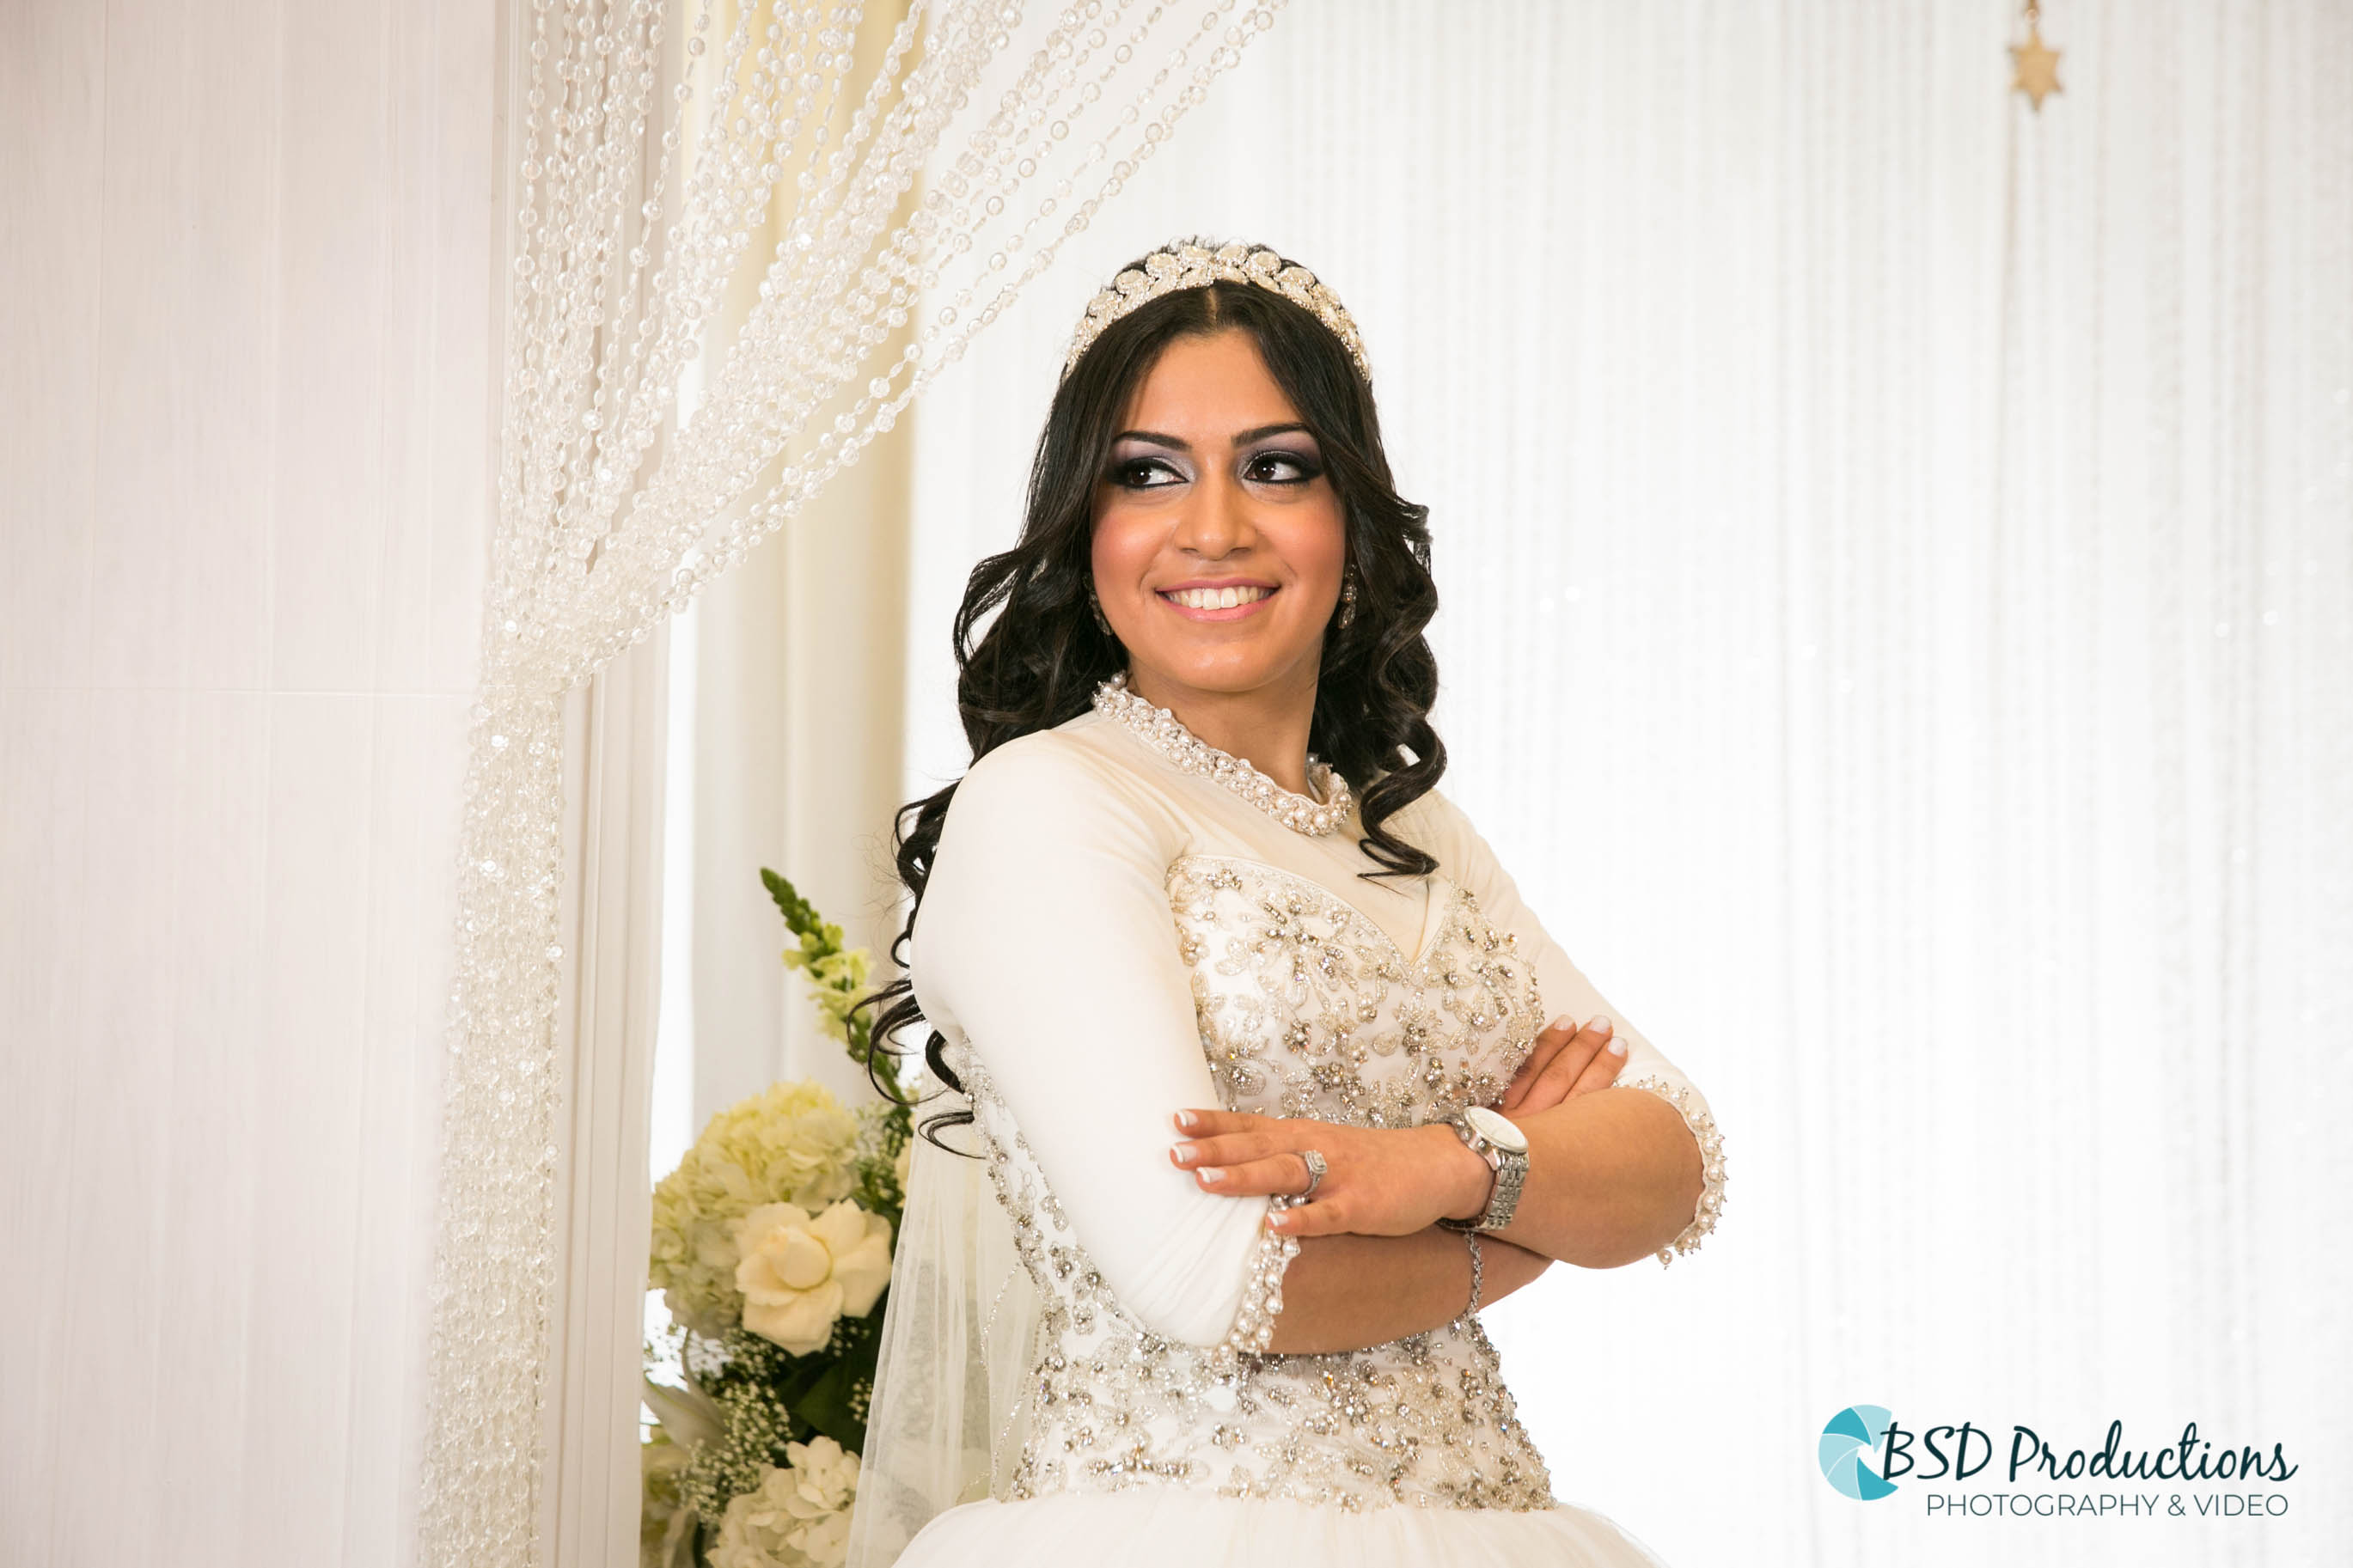 UH5A9024 Wedding – BSD Productions Photography